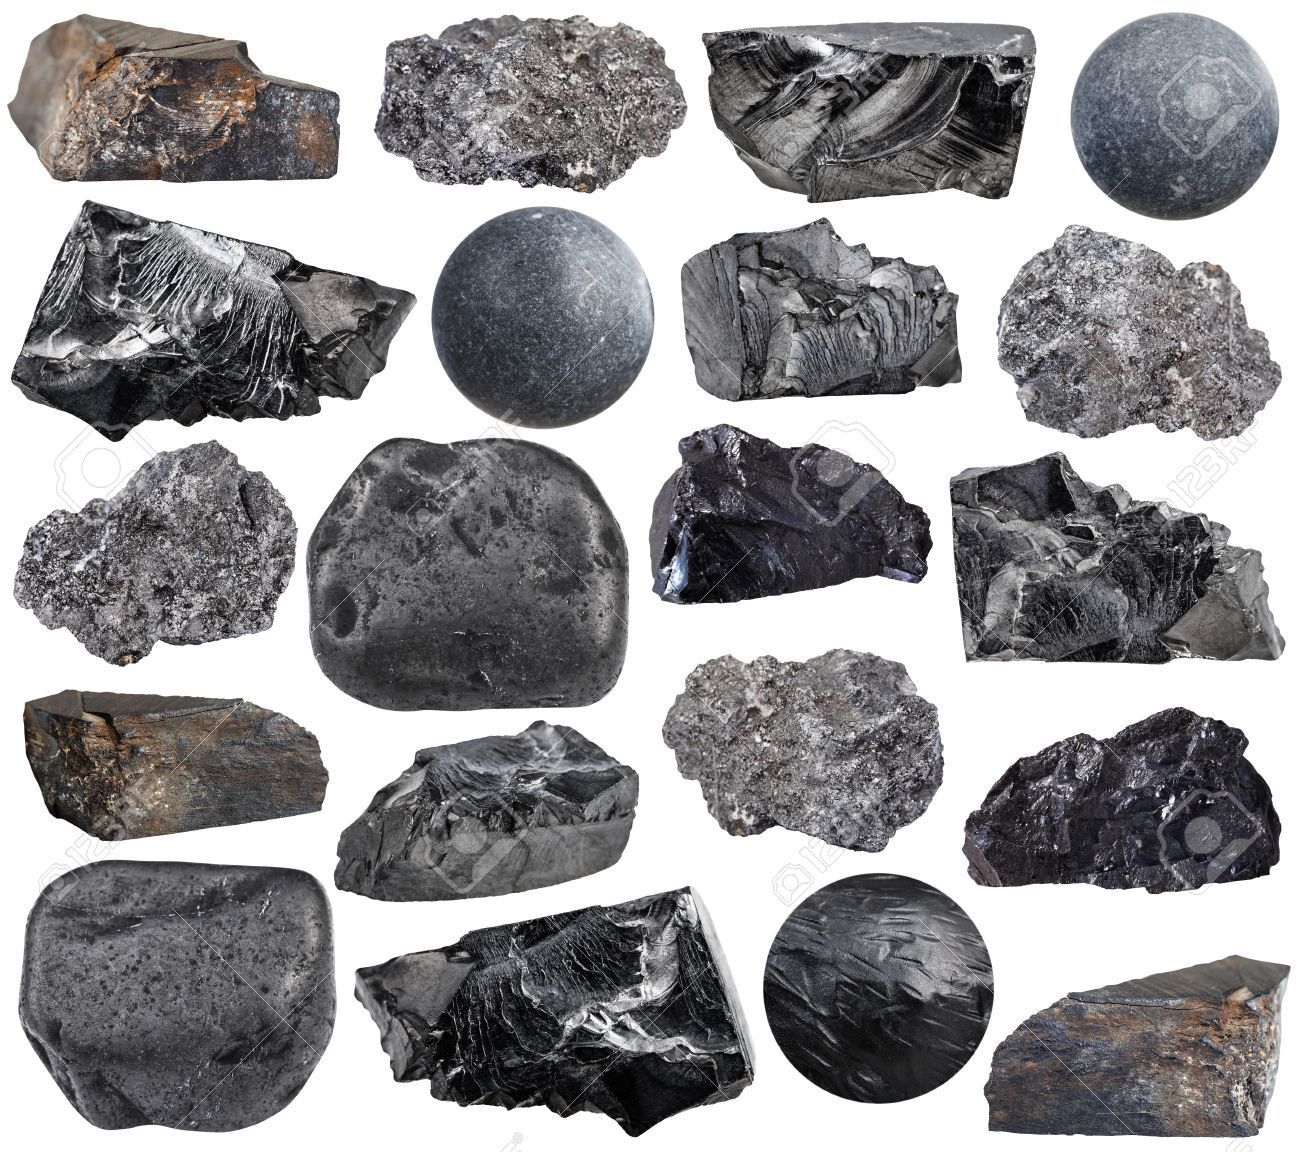 9a394d77a1 set of various carbon (anthracite, shungite, graphite, coal, jet lignite)  natural mineral stones, rocks and gemstones